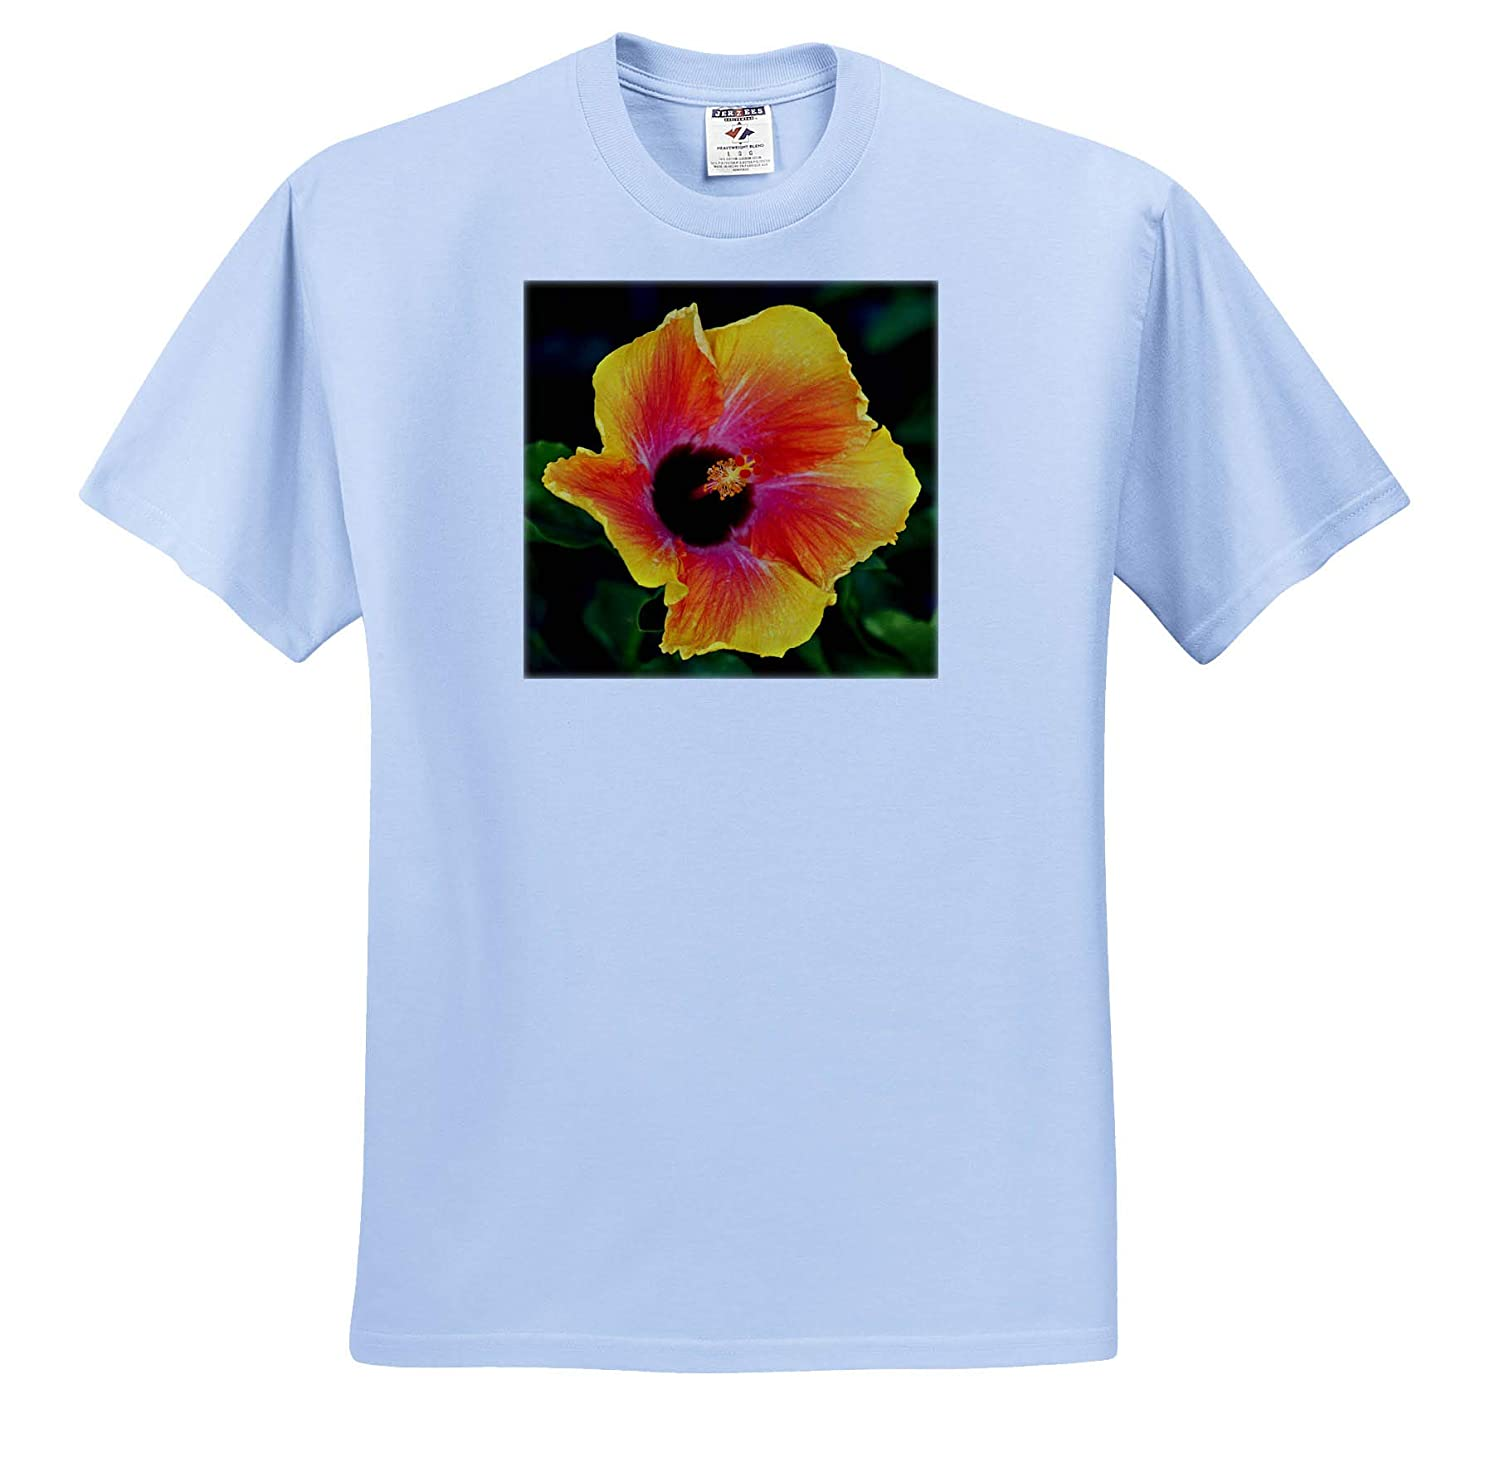 3dRose Stamp City - T-Shirts Photograph of astunning Tropical Hibiscus Flower from Our Garden Flowers